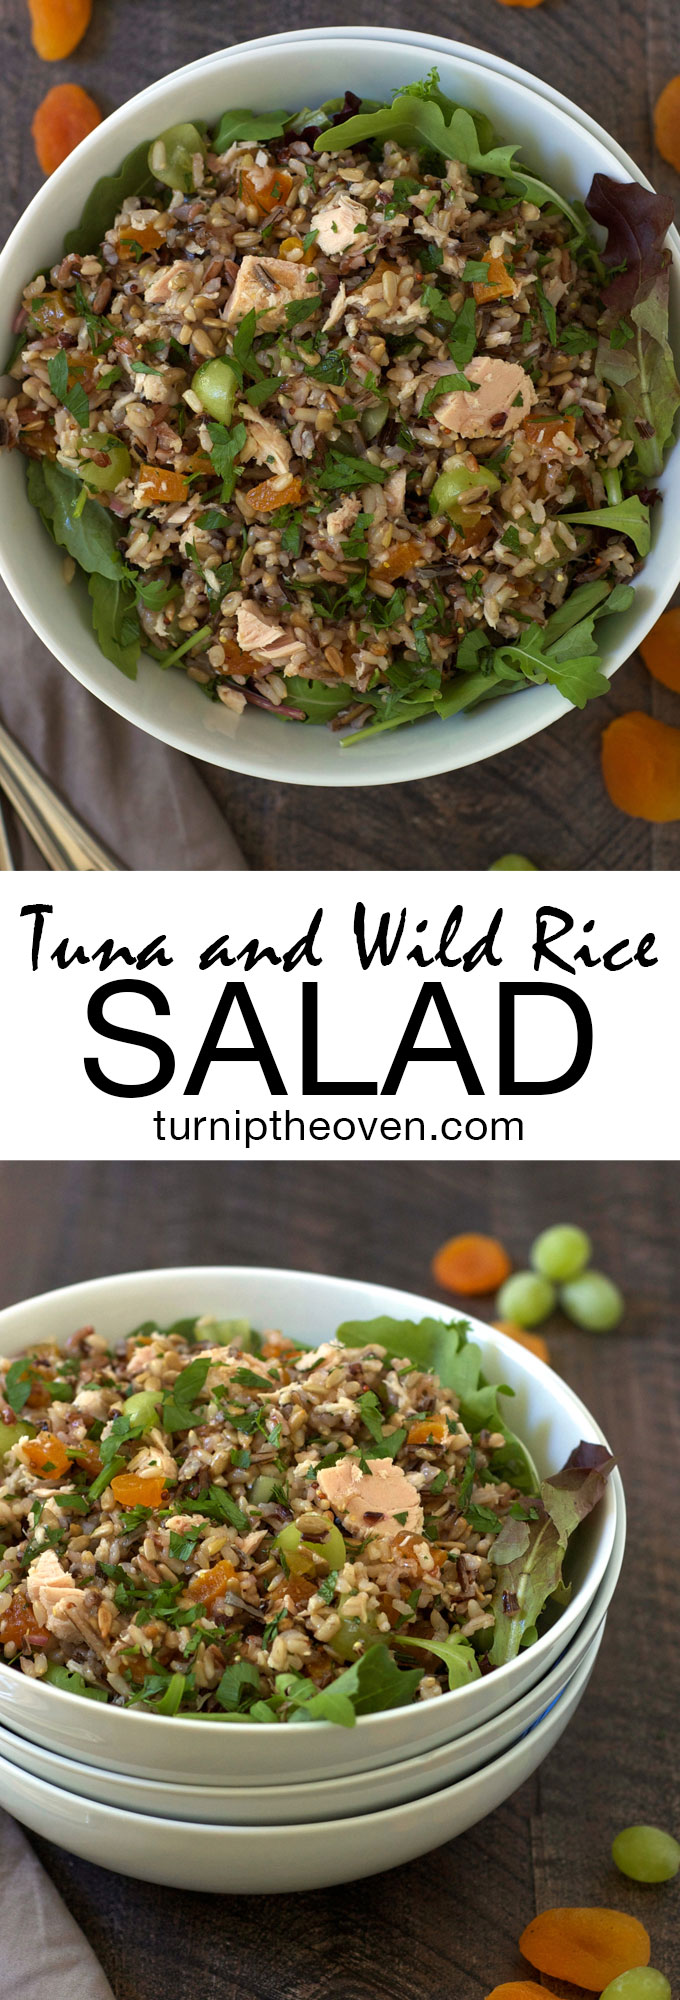 Tuna and Wild Rice Salad -- Made with Bumble Bee Tuna, juicy grapes, chewy apricots, and crunchy sunflower seeds, this satisfying, healthy, gluten-free salad is the perfect weekday lunch! #OnlyAlbacore #CG